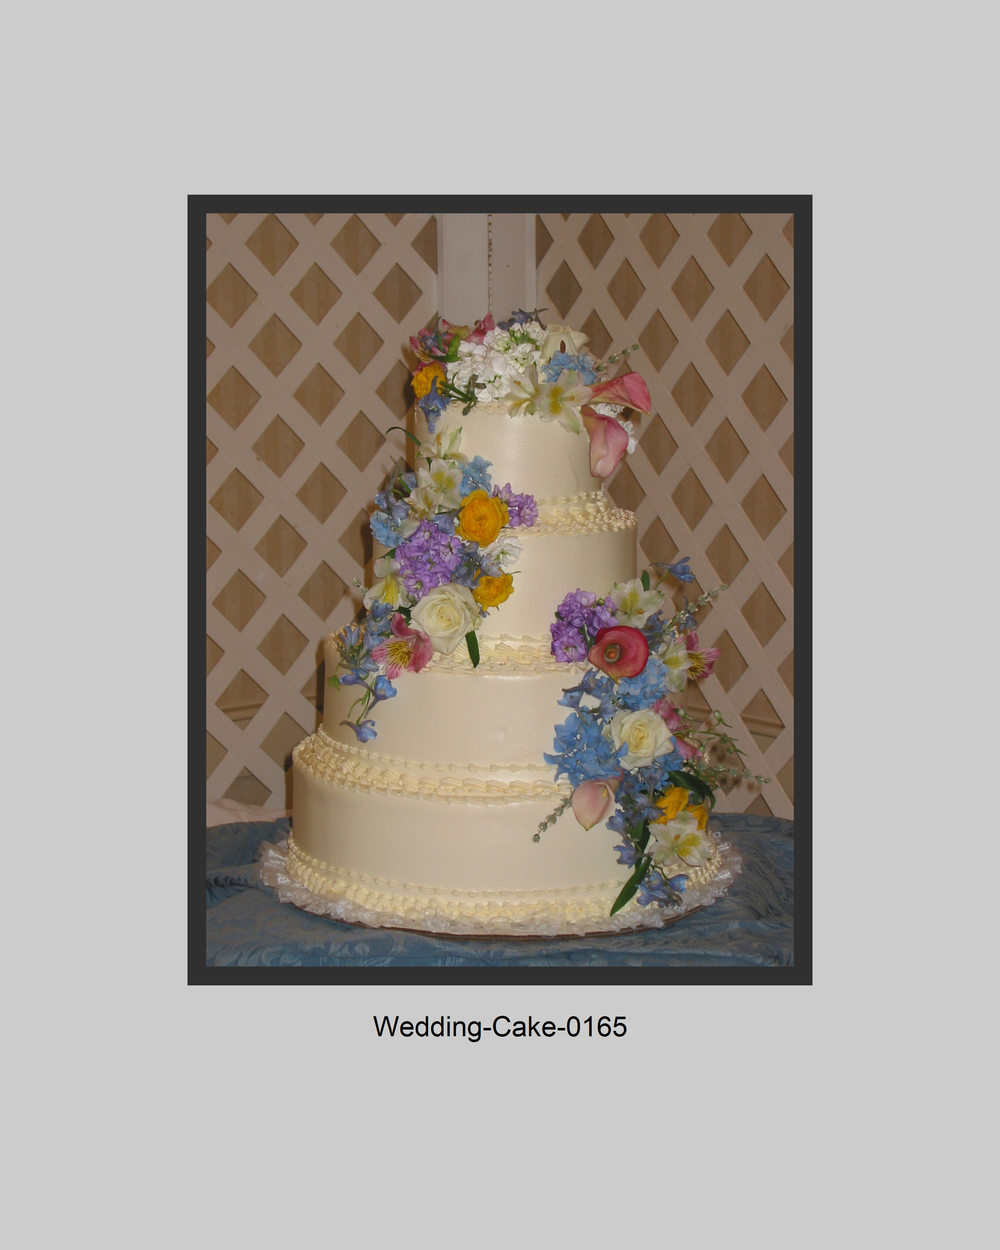 Wedding-Cake-Prints-0165.jpg